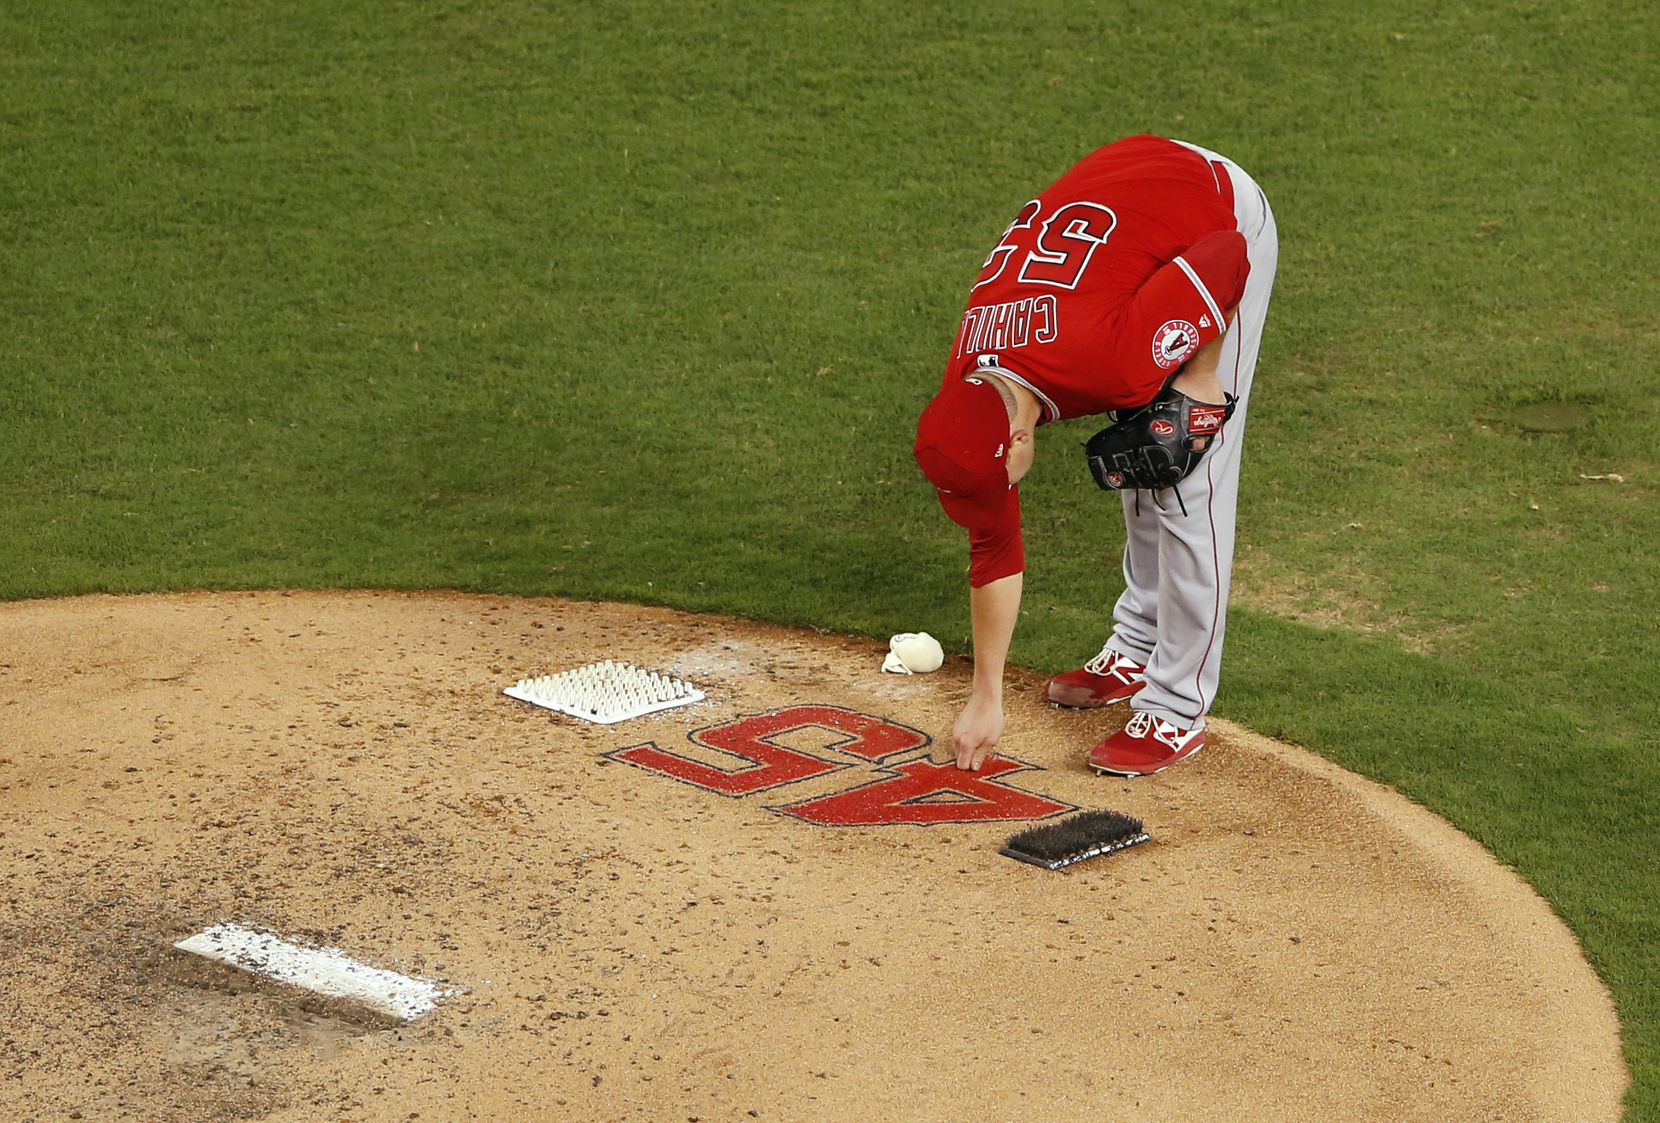 Los Angeles Angels pitcher Trevor Cahill (53) touches the number of Los Angeles Angels Tyler Skaggs (45) at the mound before pitching against the Texas Rangers during the fifth inning of play at Globe Life Park in Arlington on July 2, 2019. Los Angeles Angels Tyler Skaggs was found dead in his Southlake hotel room on July 1 before the scheduled game against the Rangers.